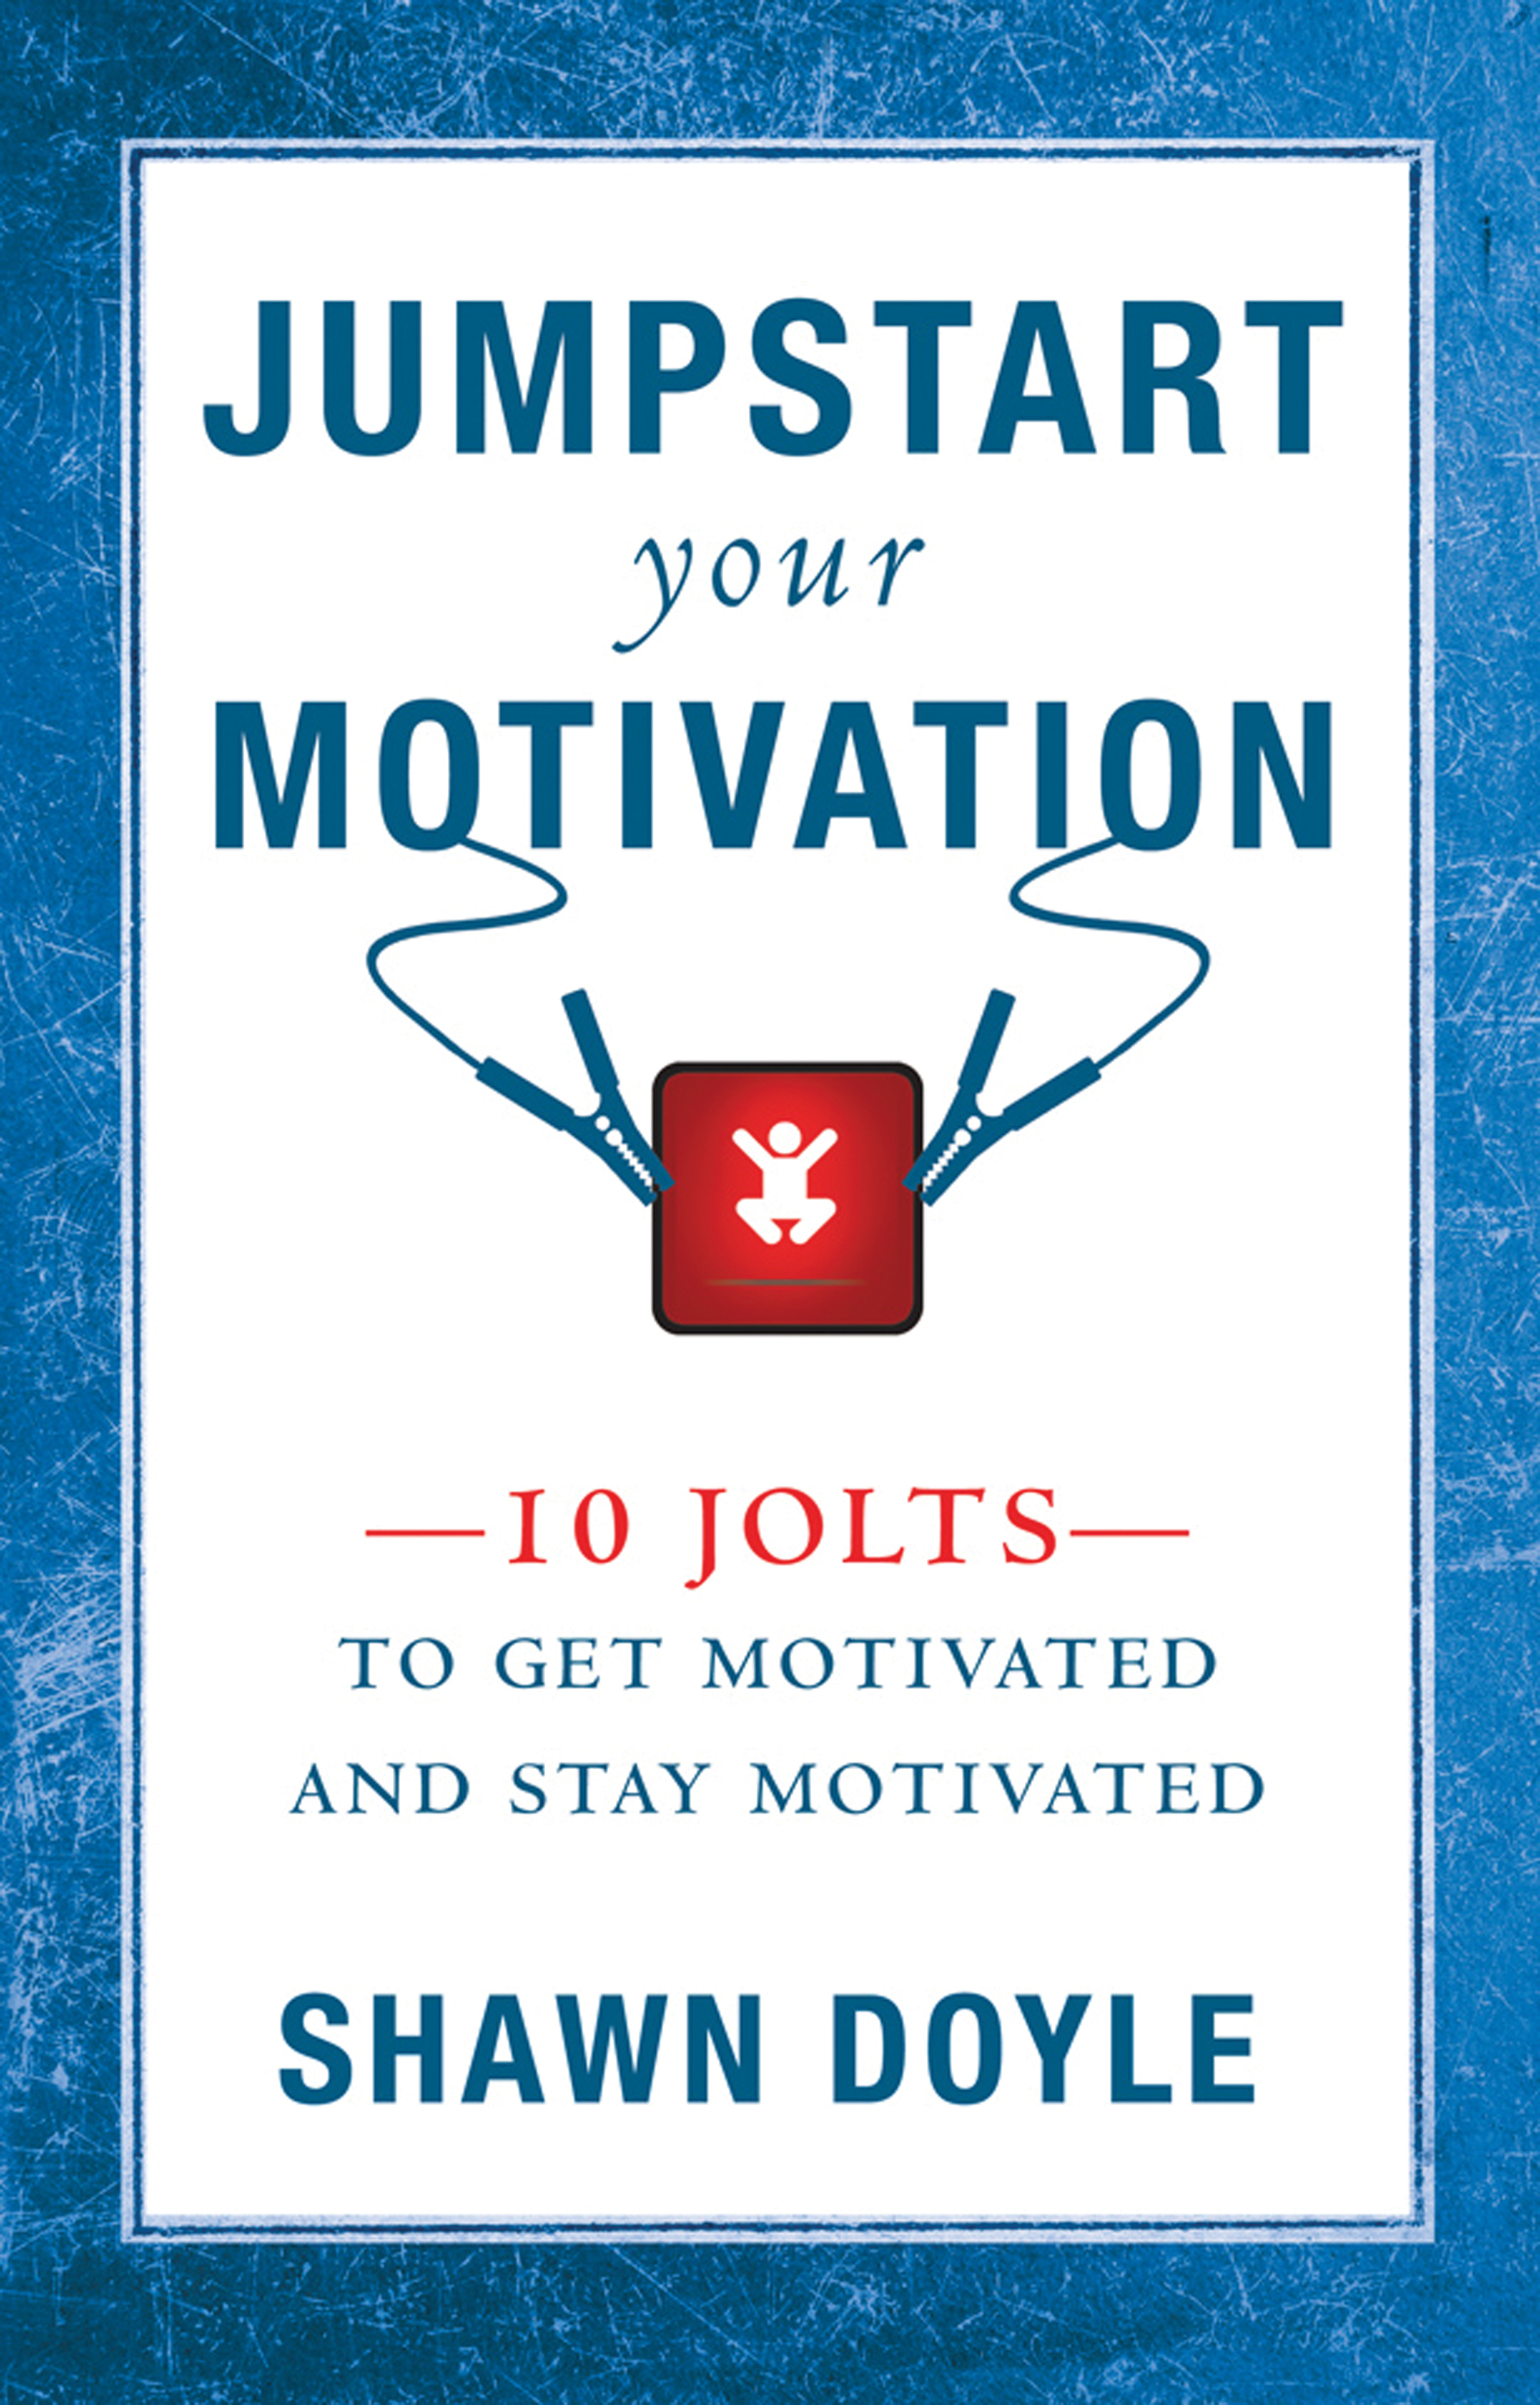 Jumpstart Your Motivation - By shawn doyle csp